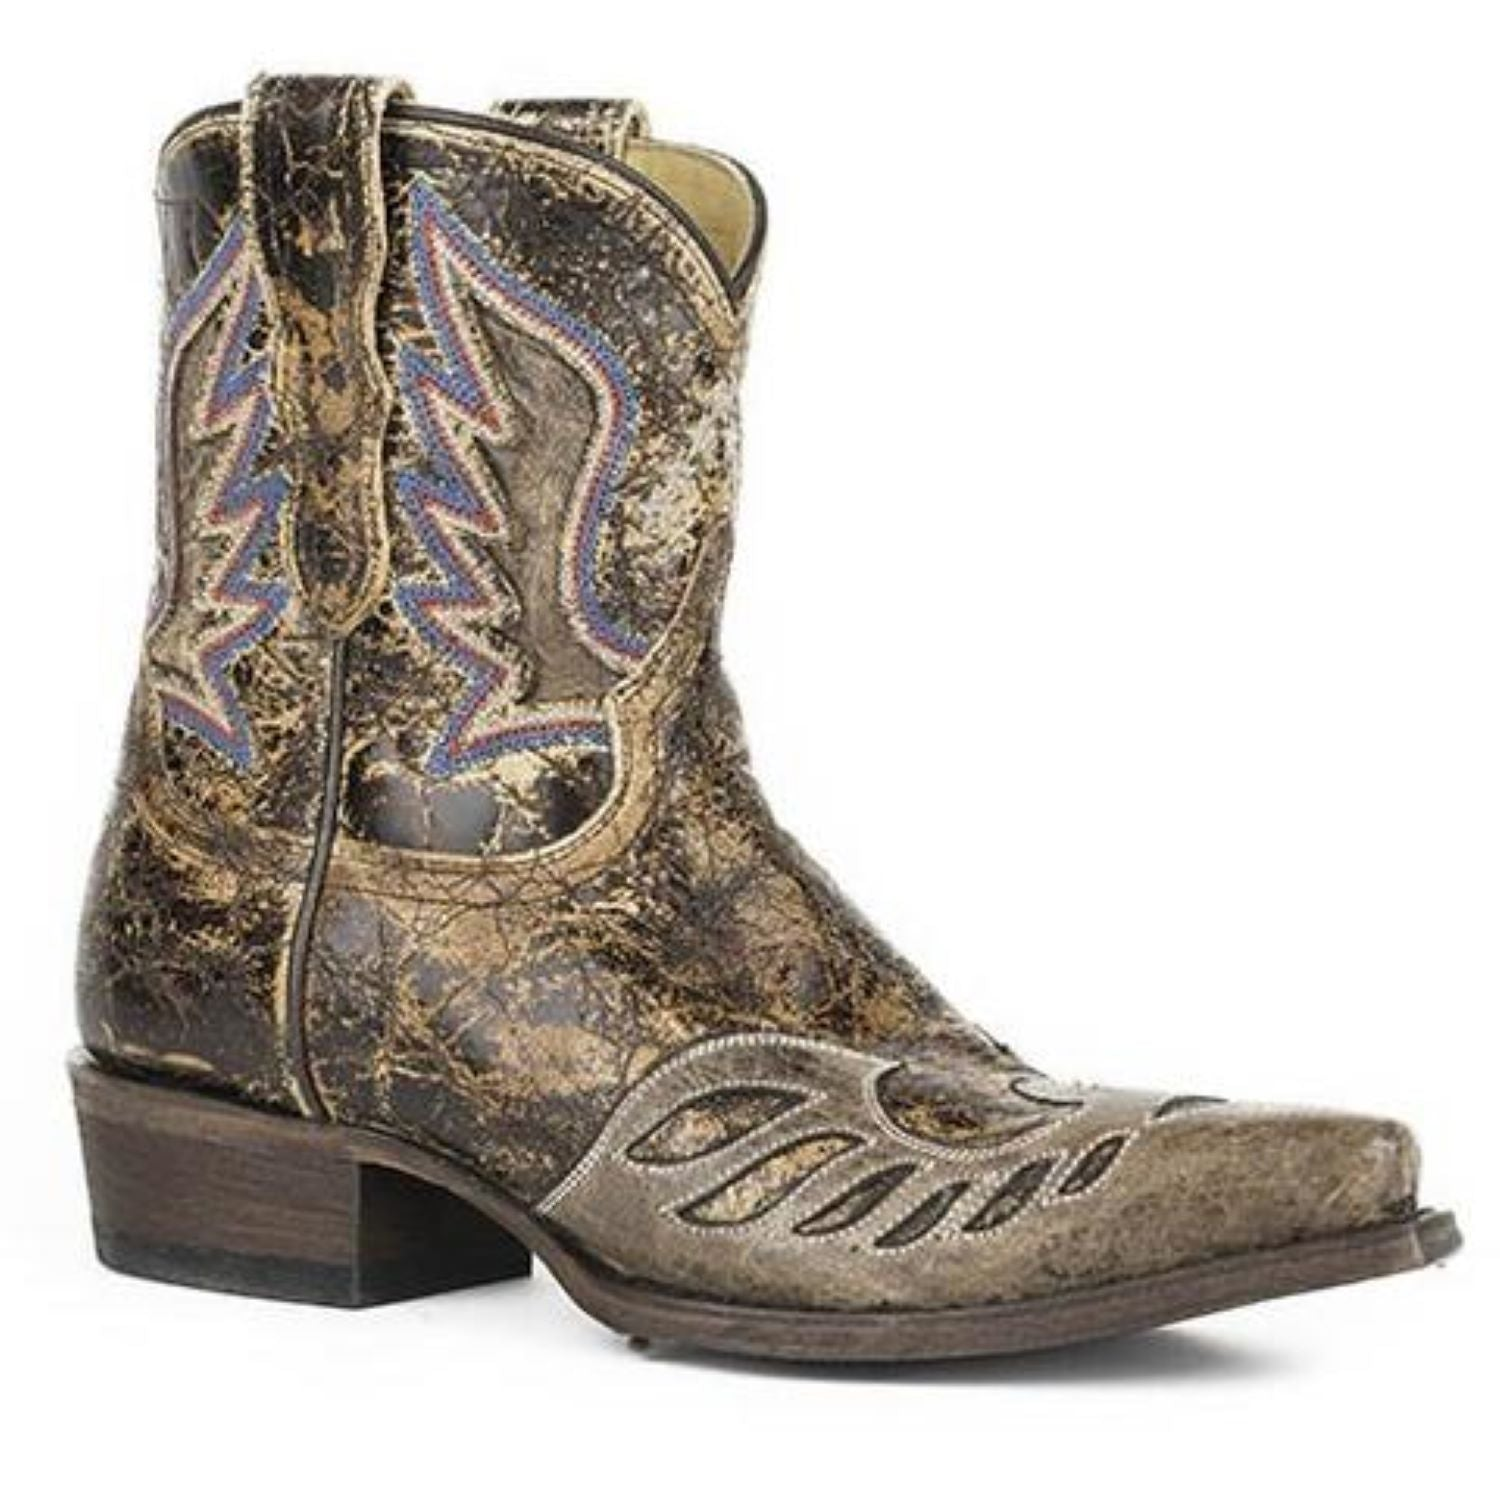 8e2c42f898b Women's Stetson Reagan Short Ankle Boots Snip Toe Handcrafted